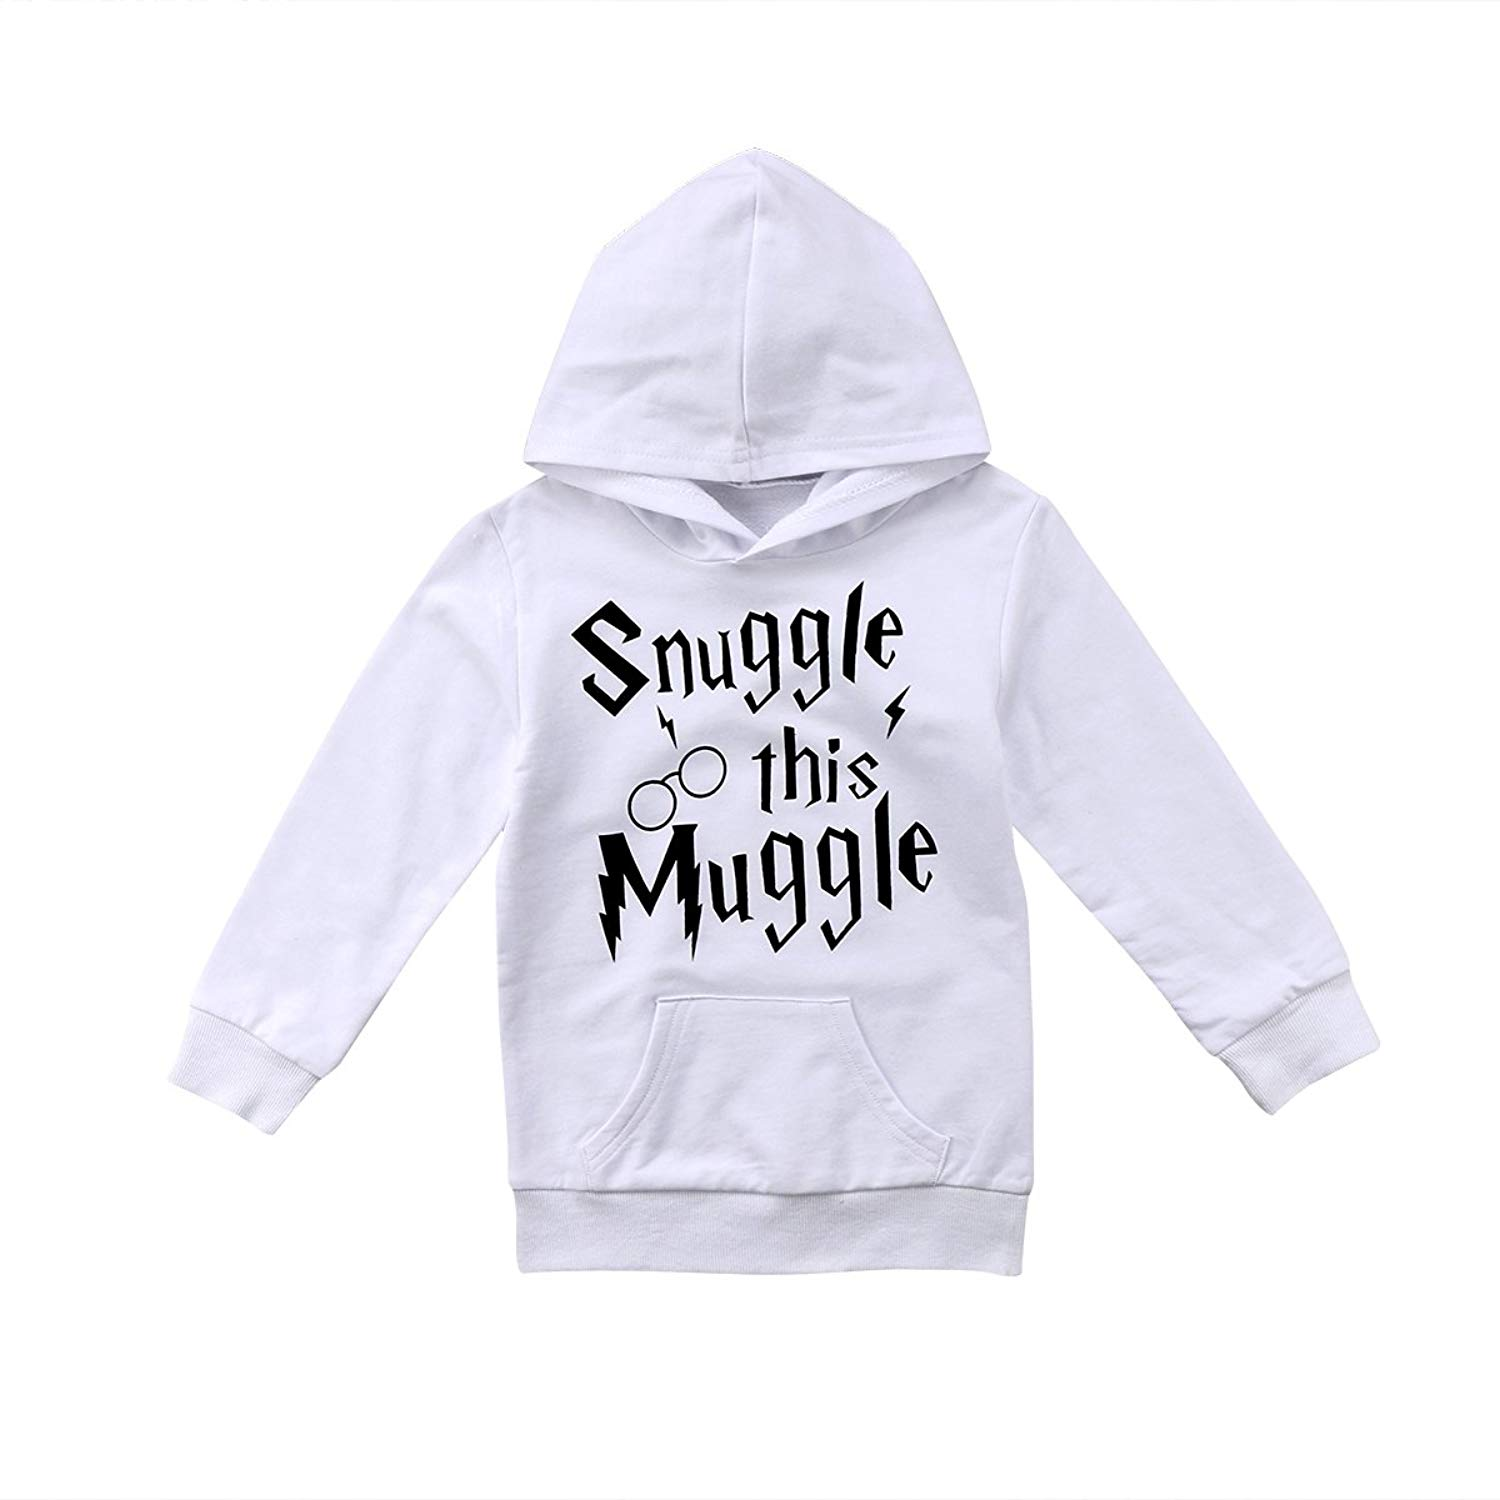 Kids Toddler Baby Boys Girls Hooded Sweatshirt Unisex Baby Hoodie With Pocket Outfit